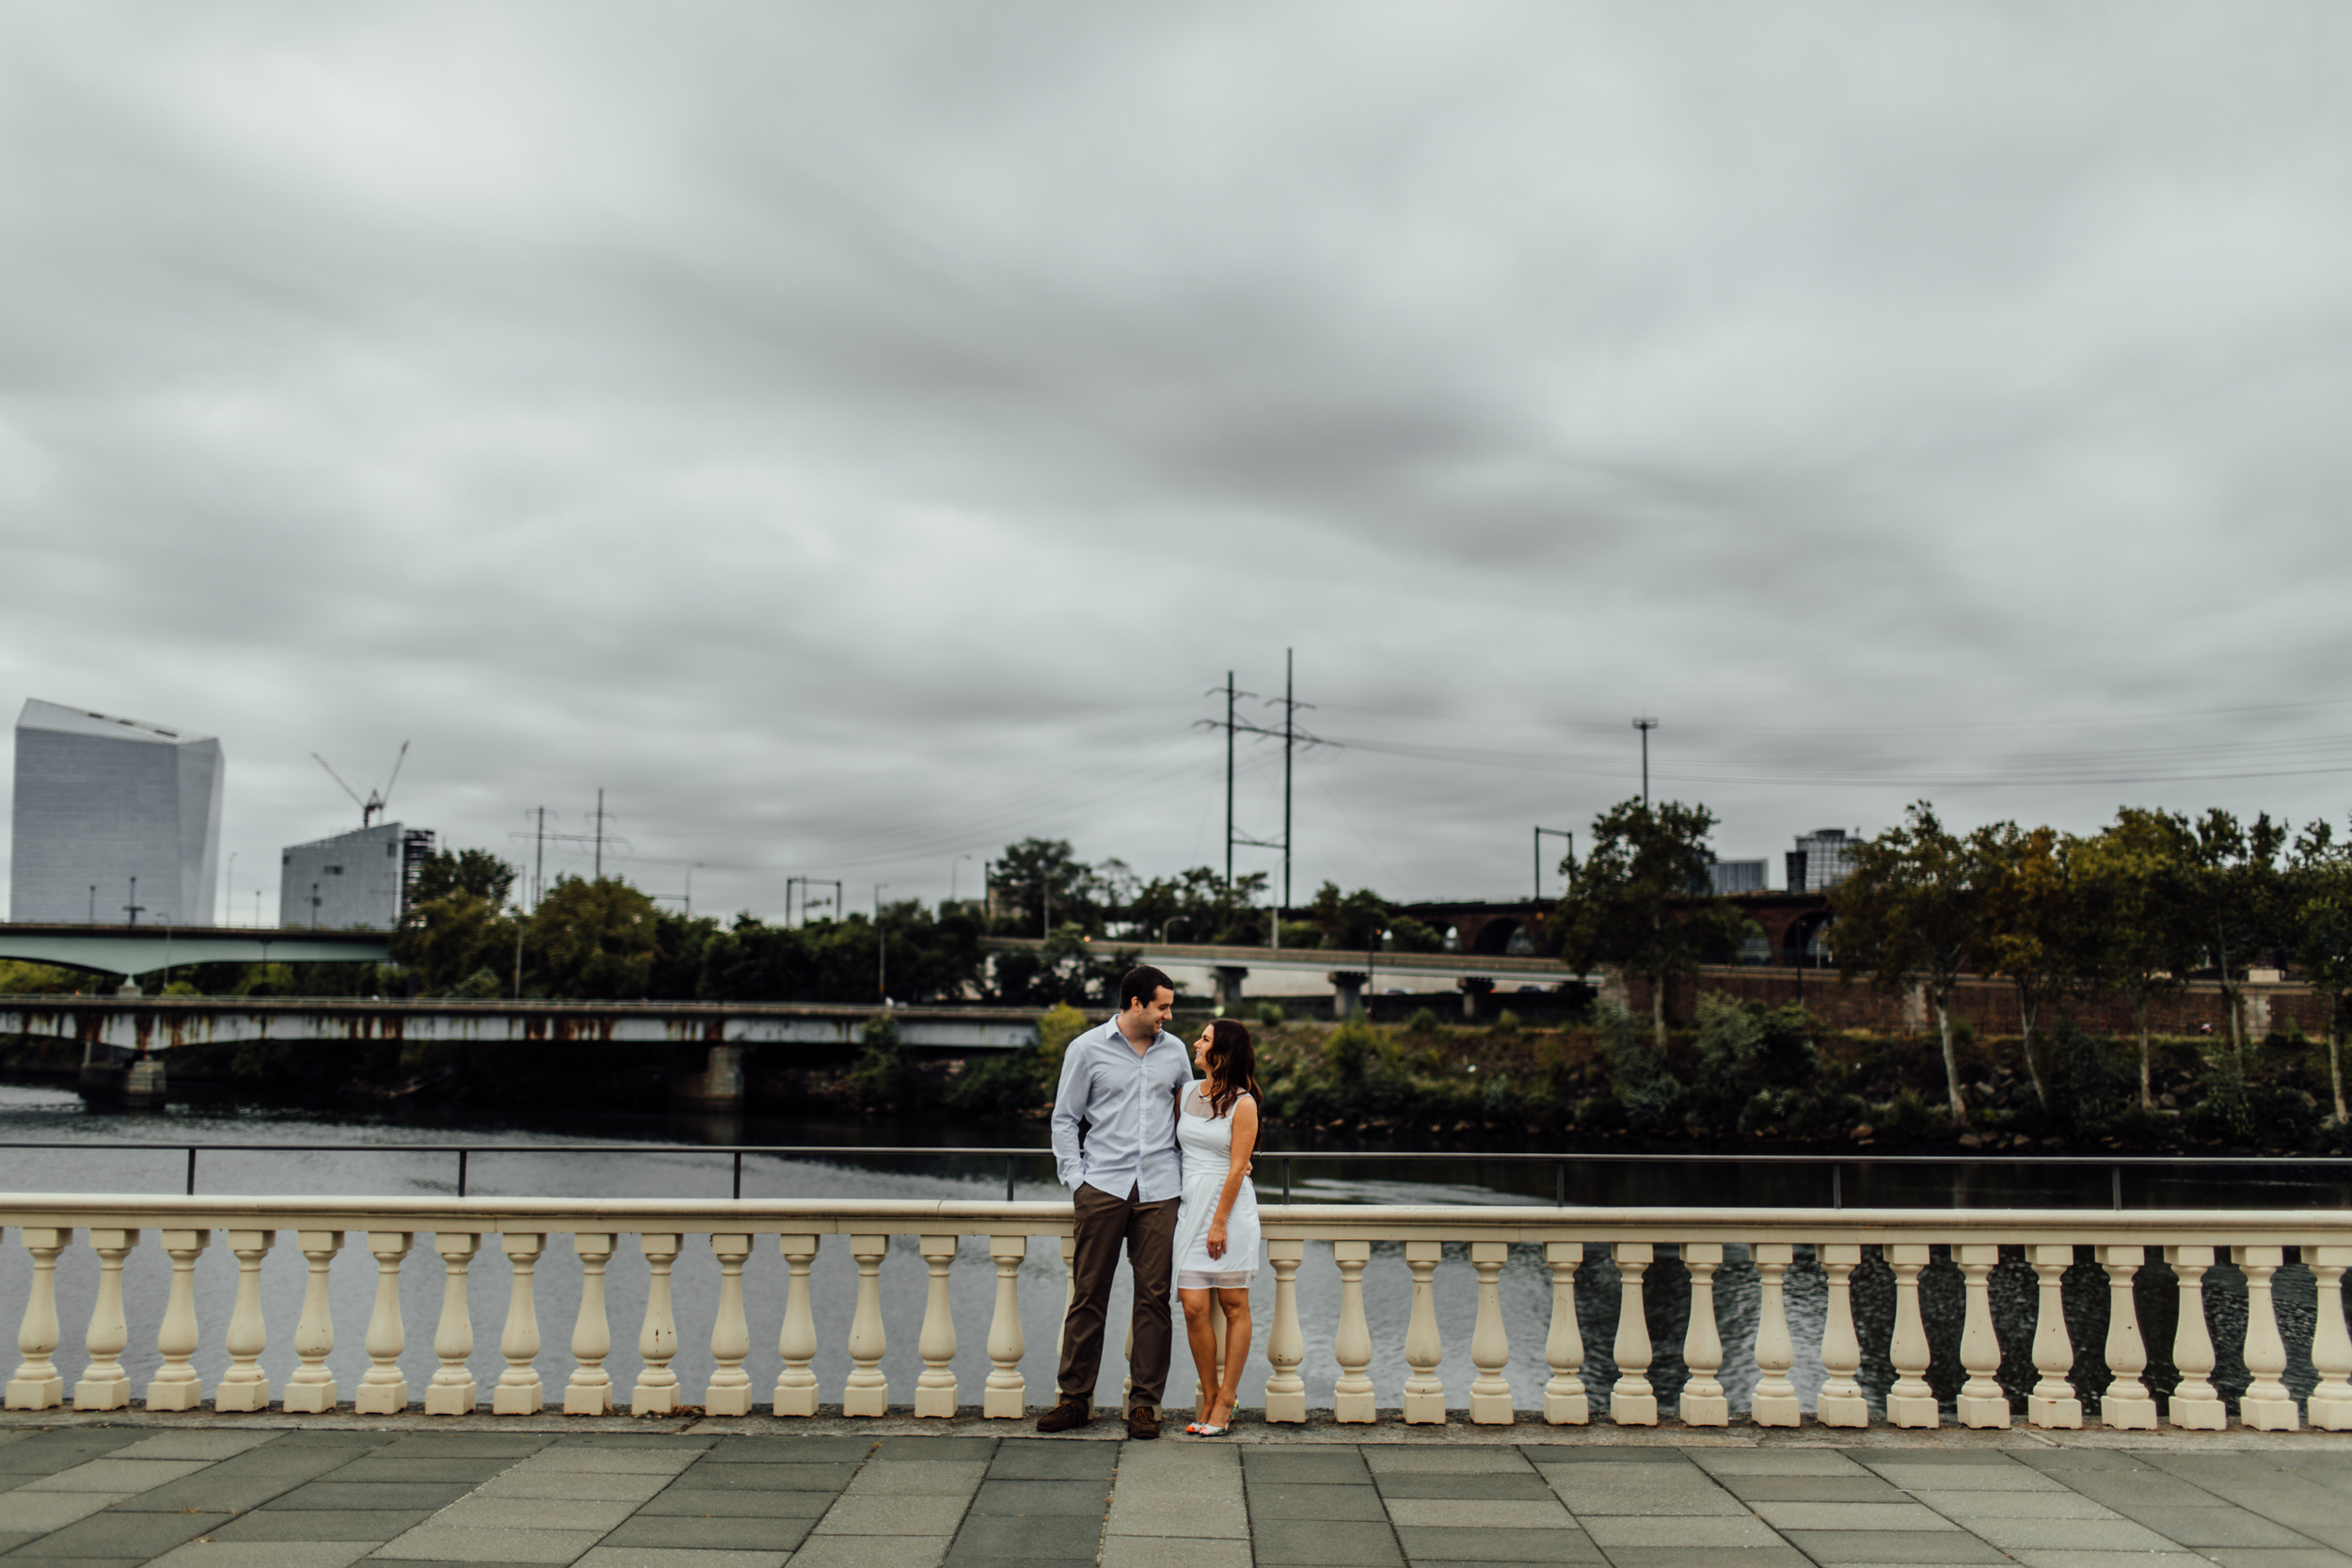 BRITTANYandKEVIN-Engagement2015 (26 of 115).jpg